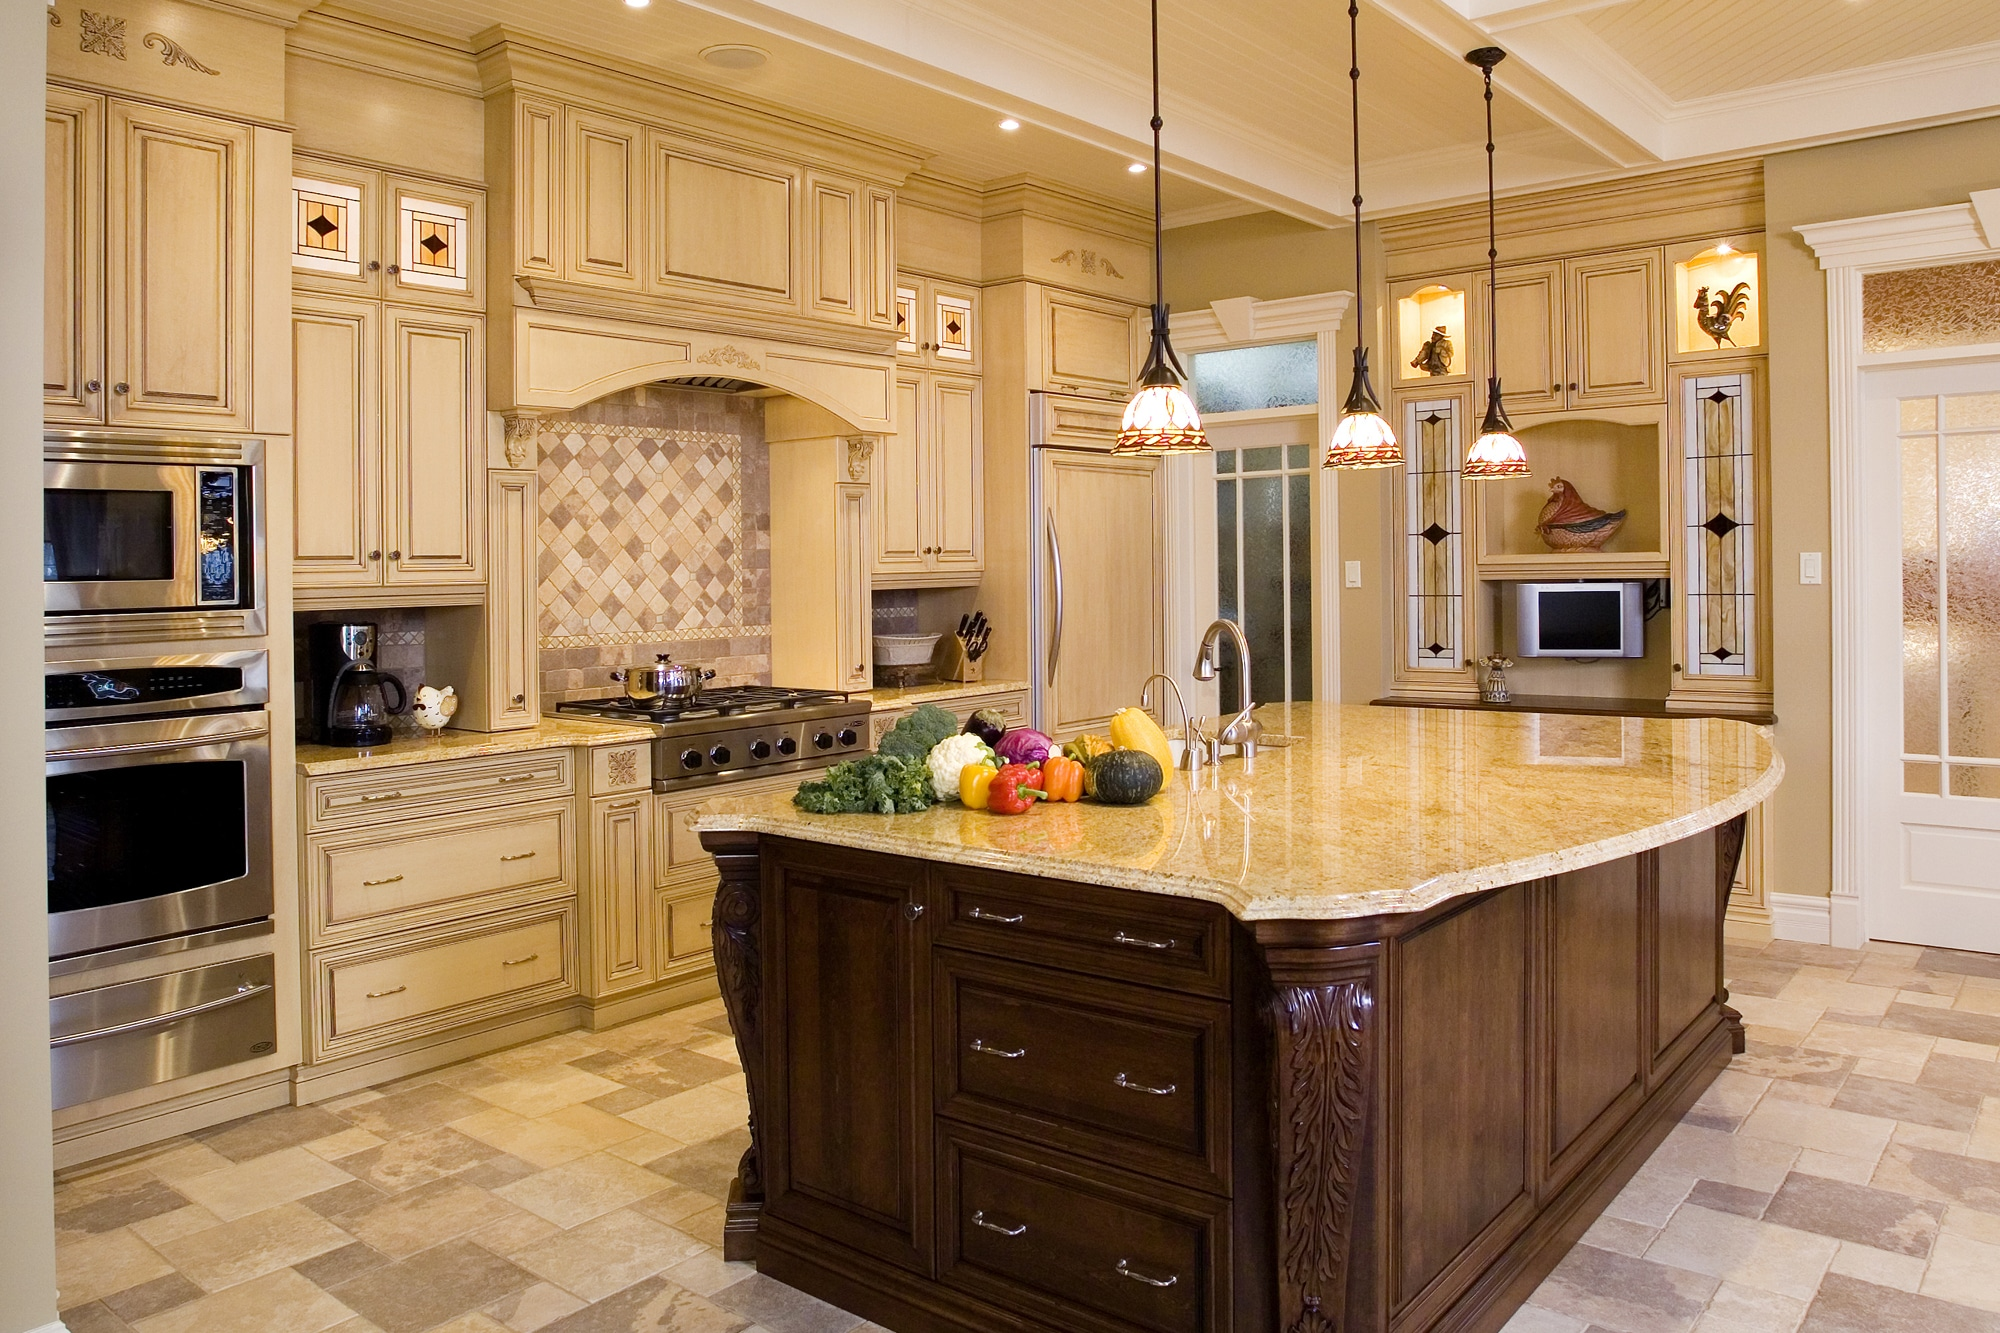 Glaze For Kitchen Cabinets 3 Great Reasons To Glaze Your Kitchen Cabinets